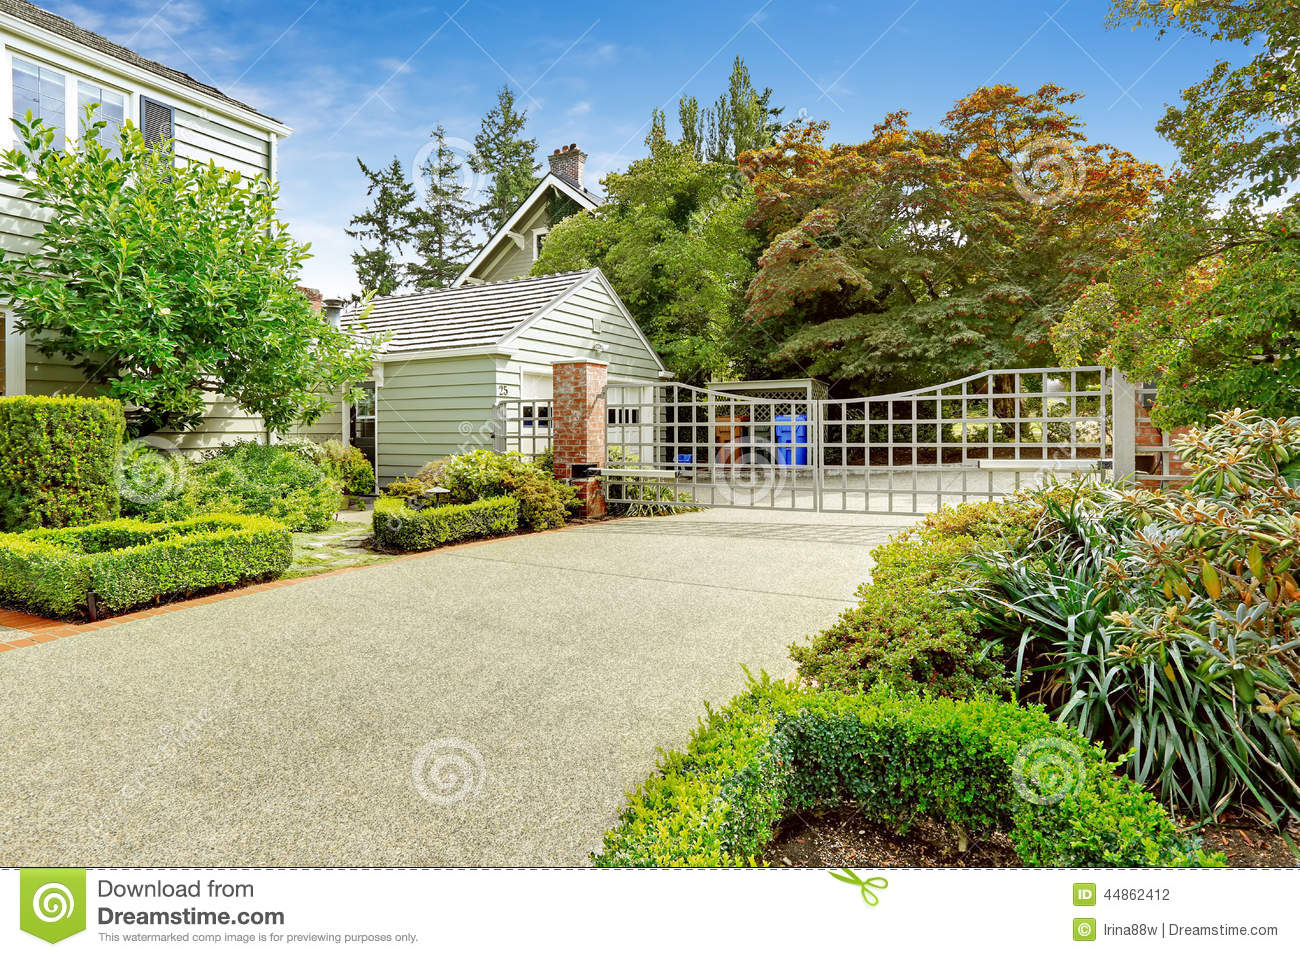 Luxury Real Estate In Tacoma WA House With Driveway And Large Stock Photo Image 44862412